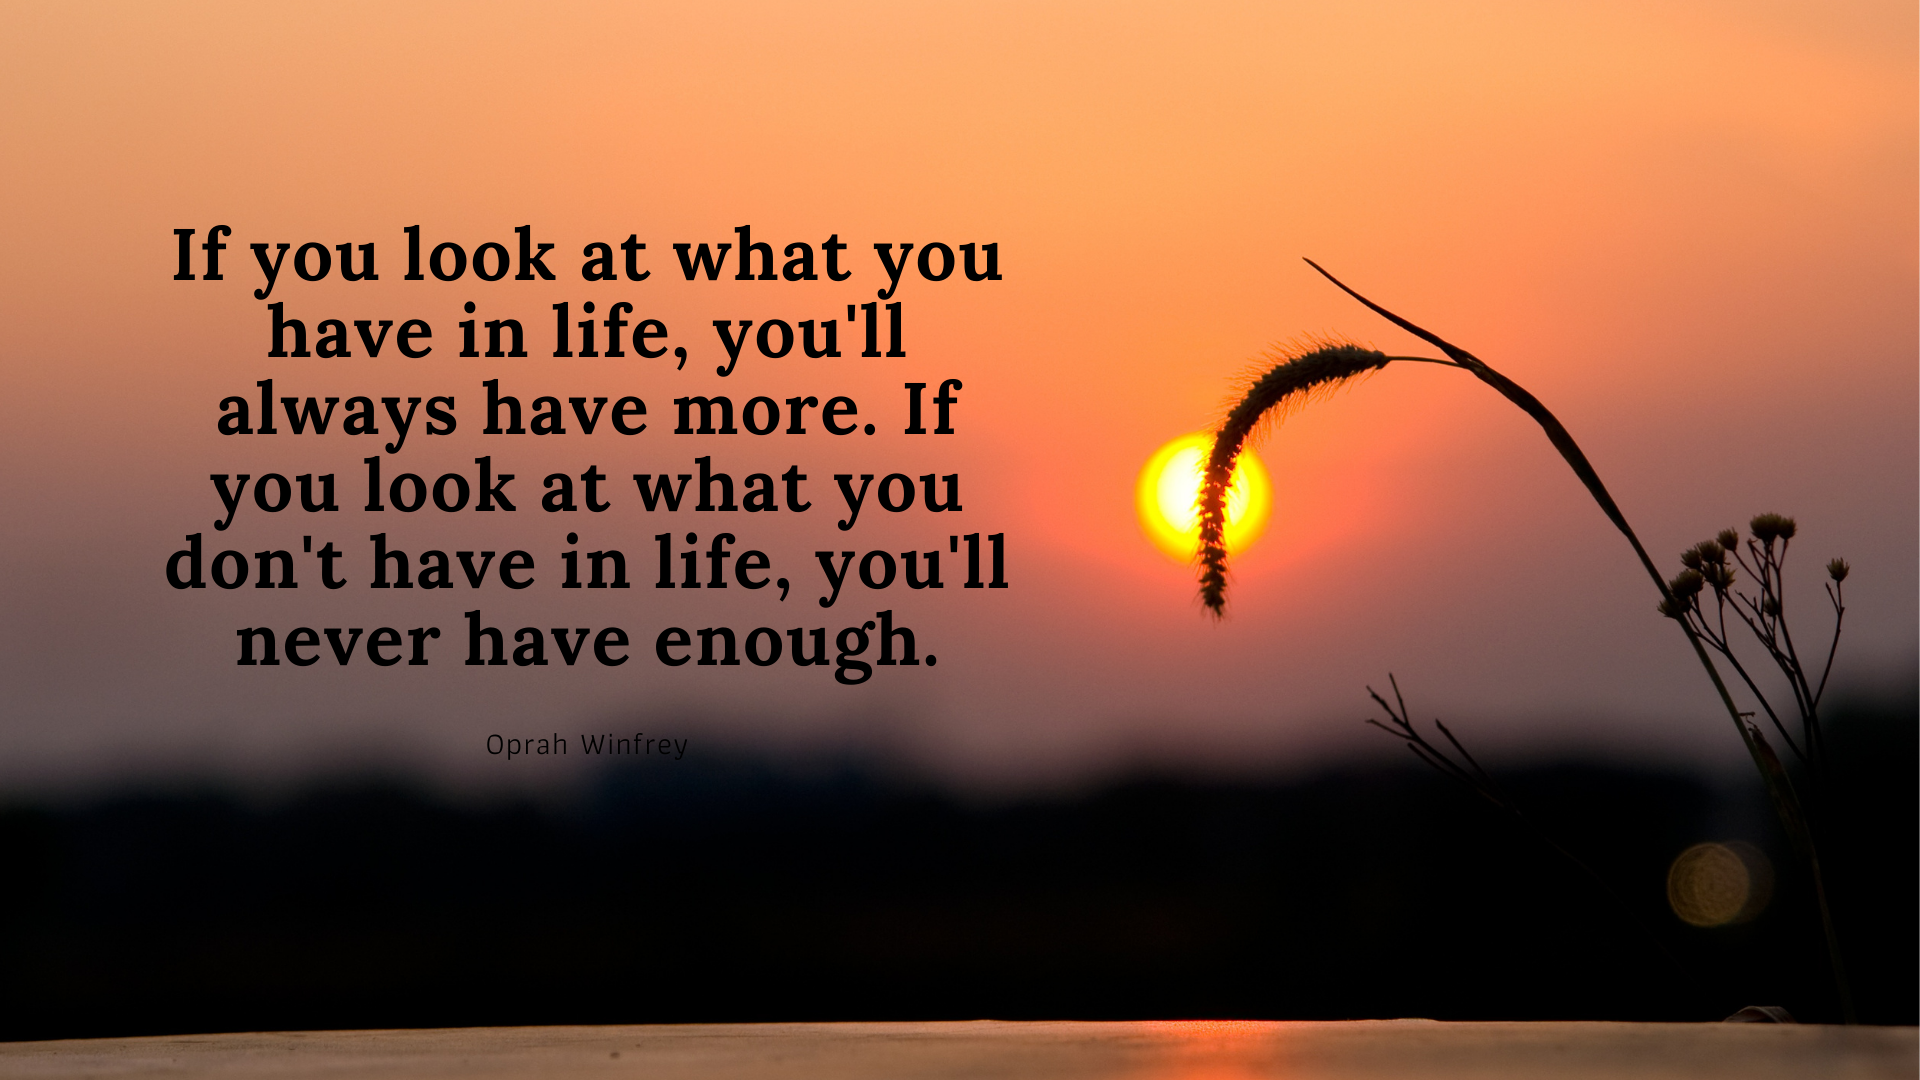 If you look at what you have in life, you'll always have more. If you look at what you don't have in life, you'll never have enough. – Oprah Winfrey[1920×1080]